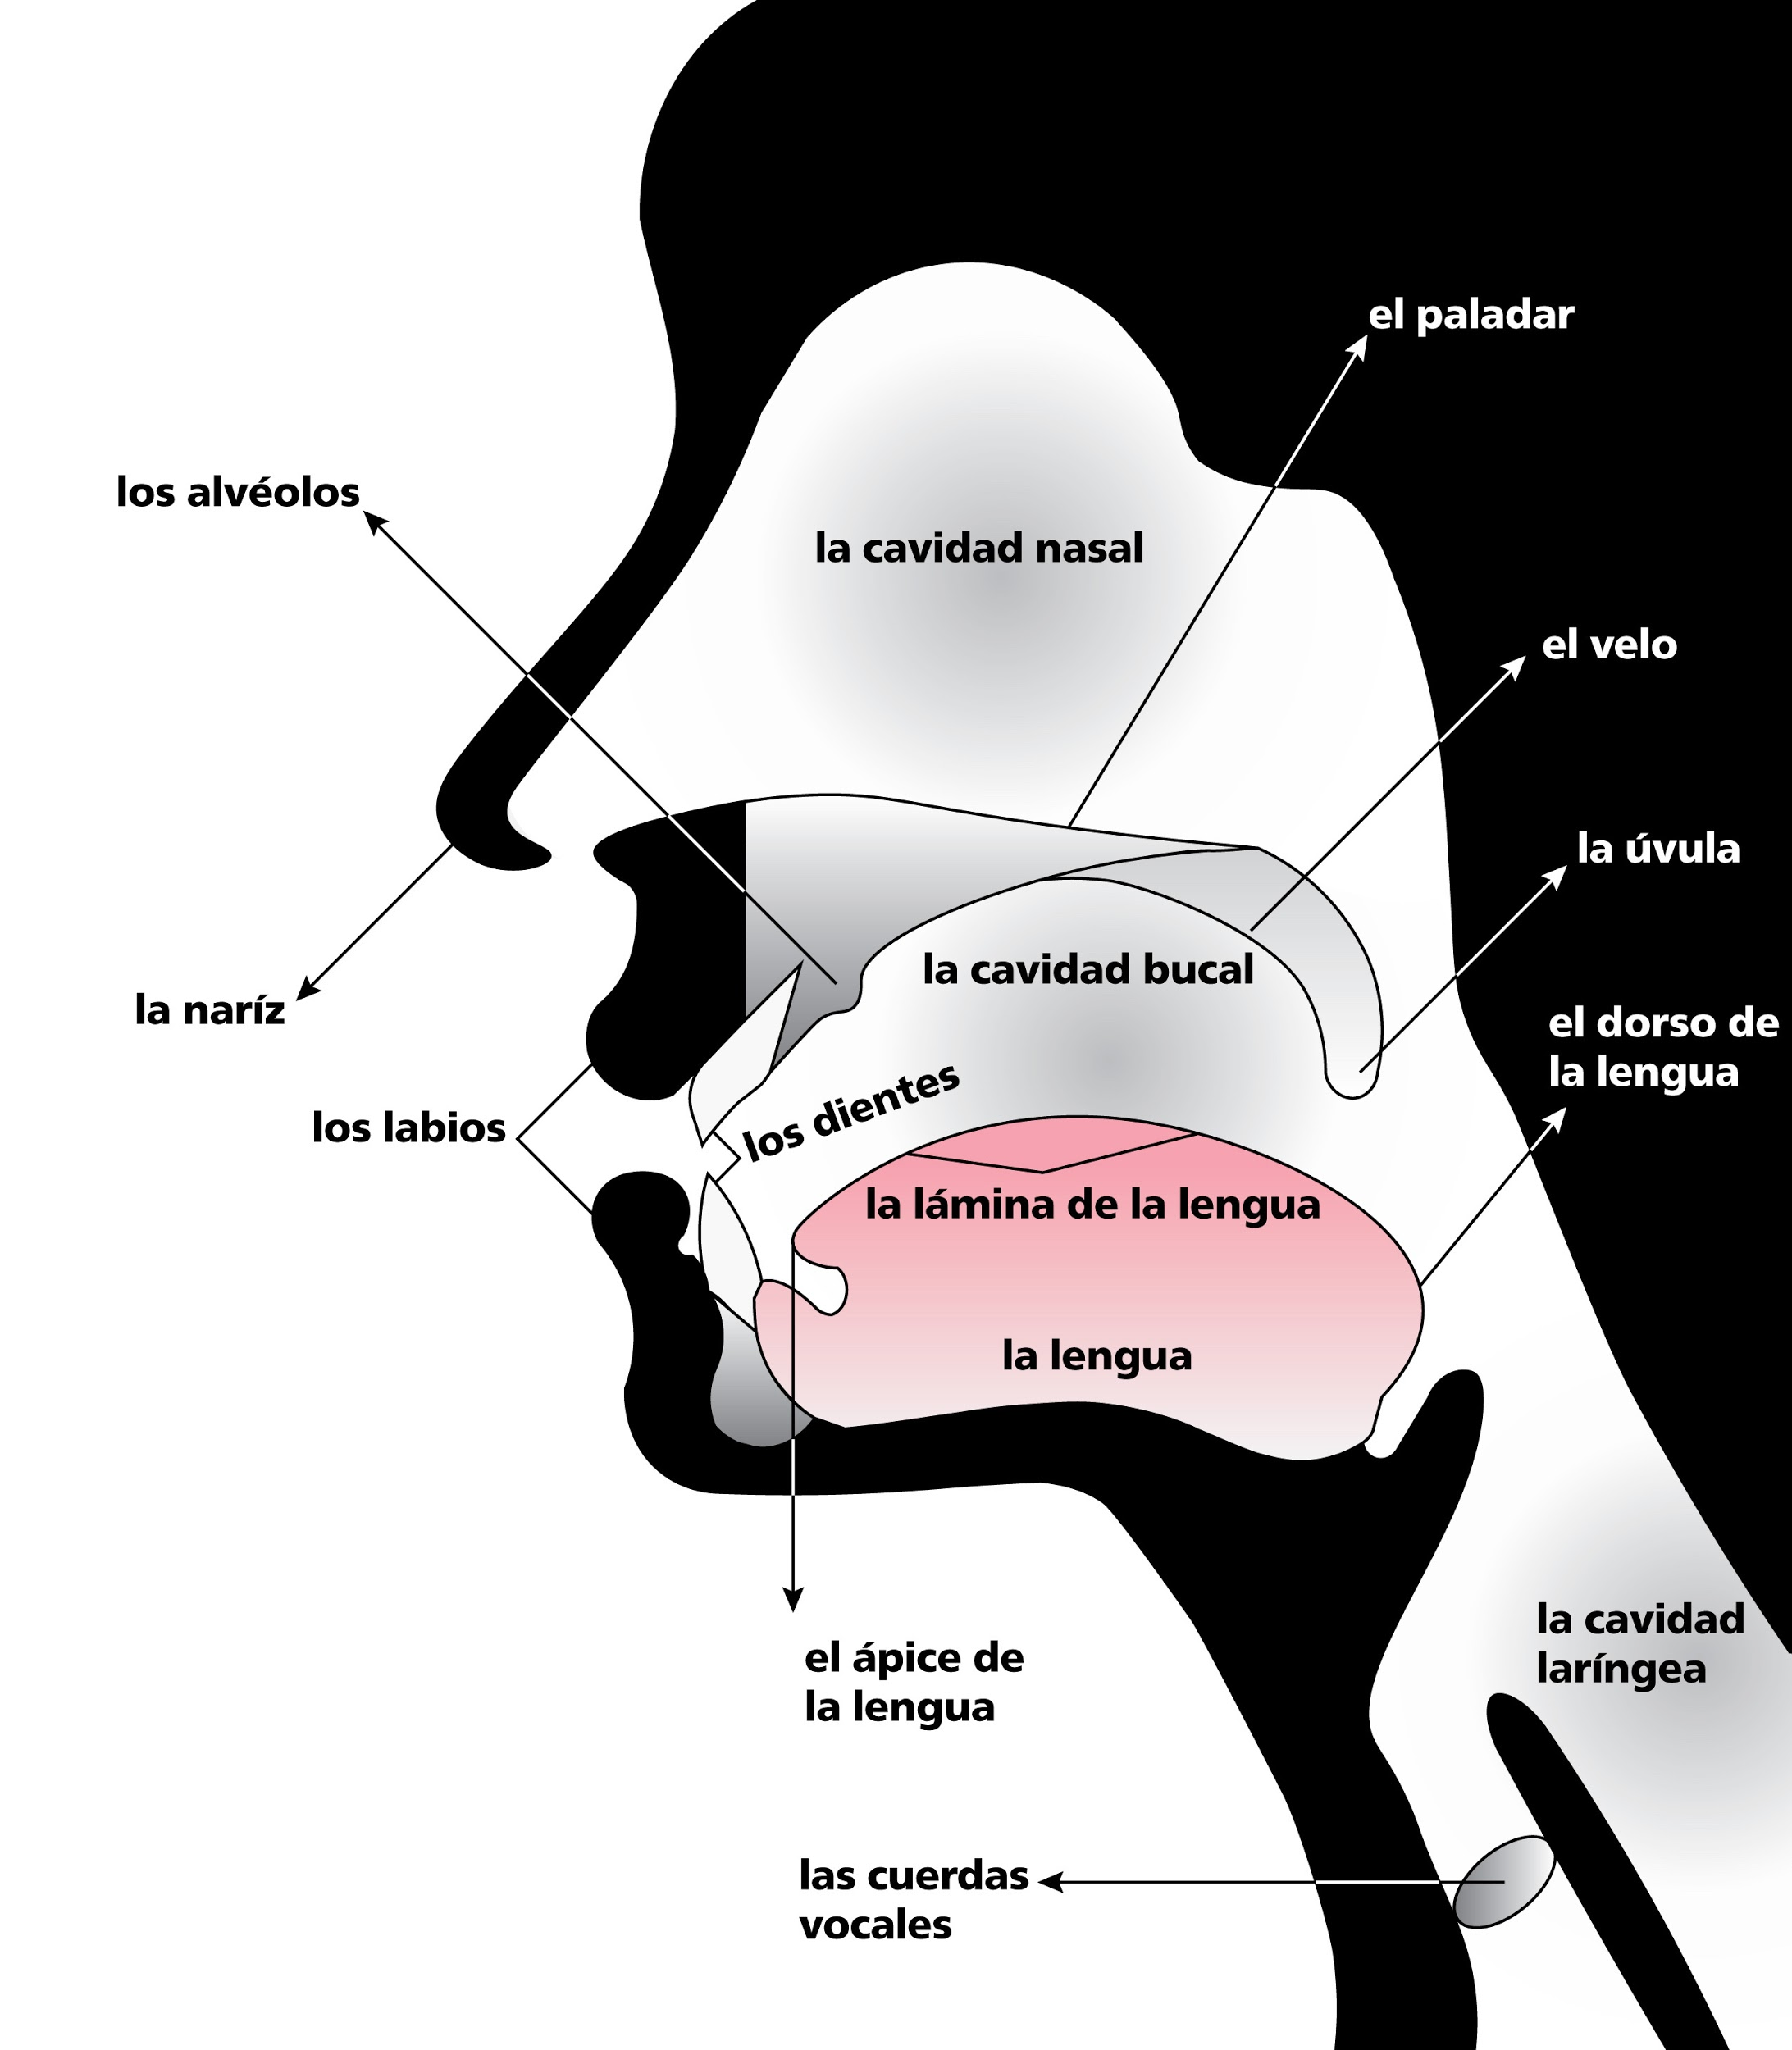 anatomical sketch of nose and throat, labeled in Spanish